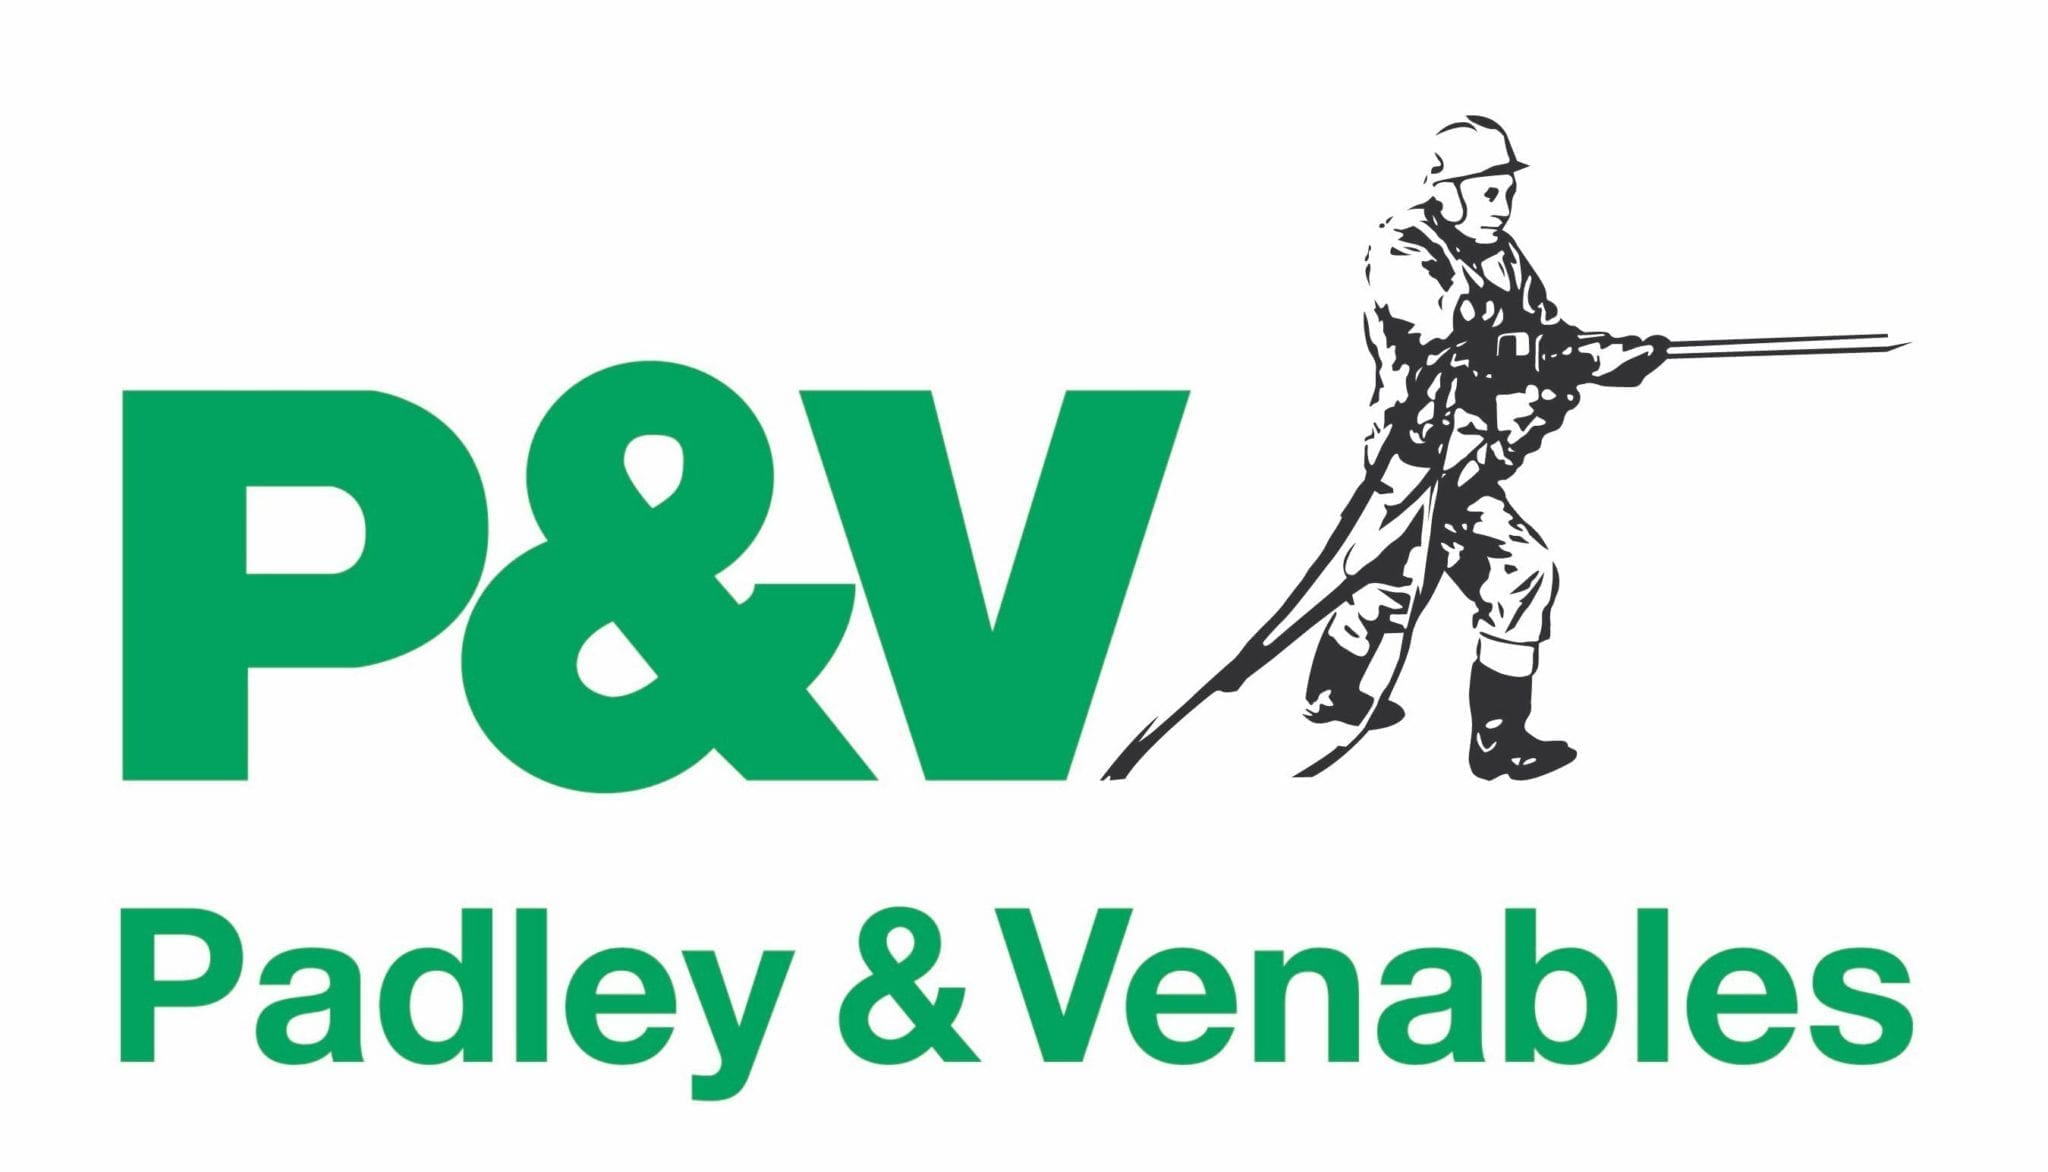 Acquired Padley & Venables